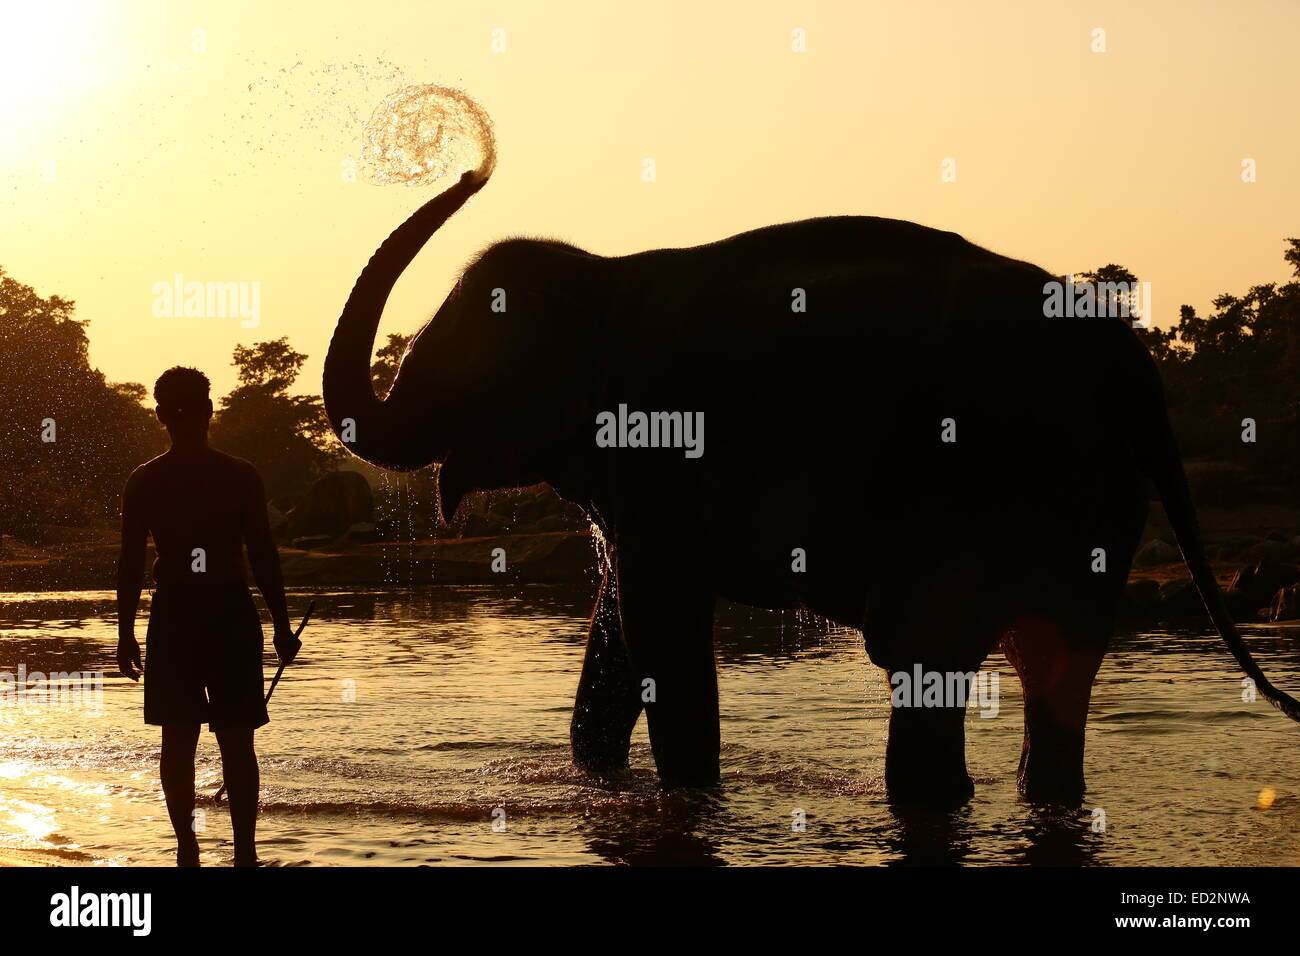 Mahout giving bath to elephant in Kanha National Park - Stock Image